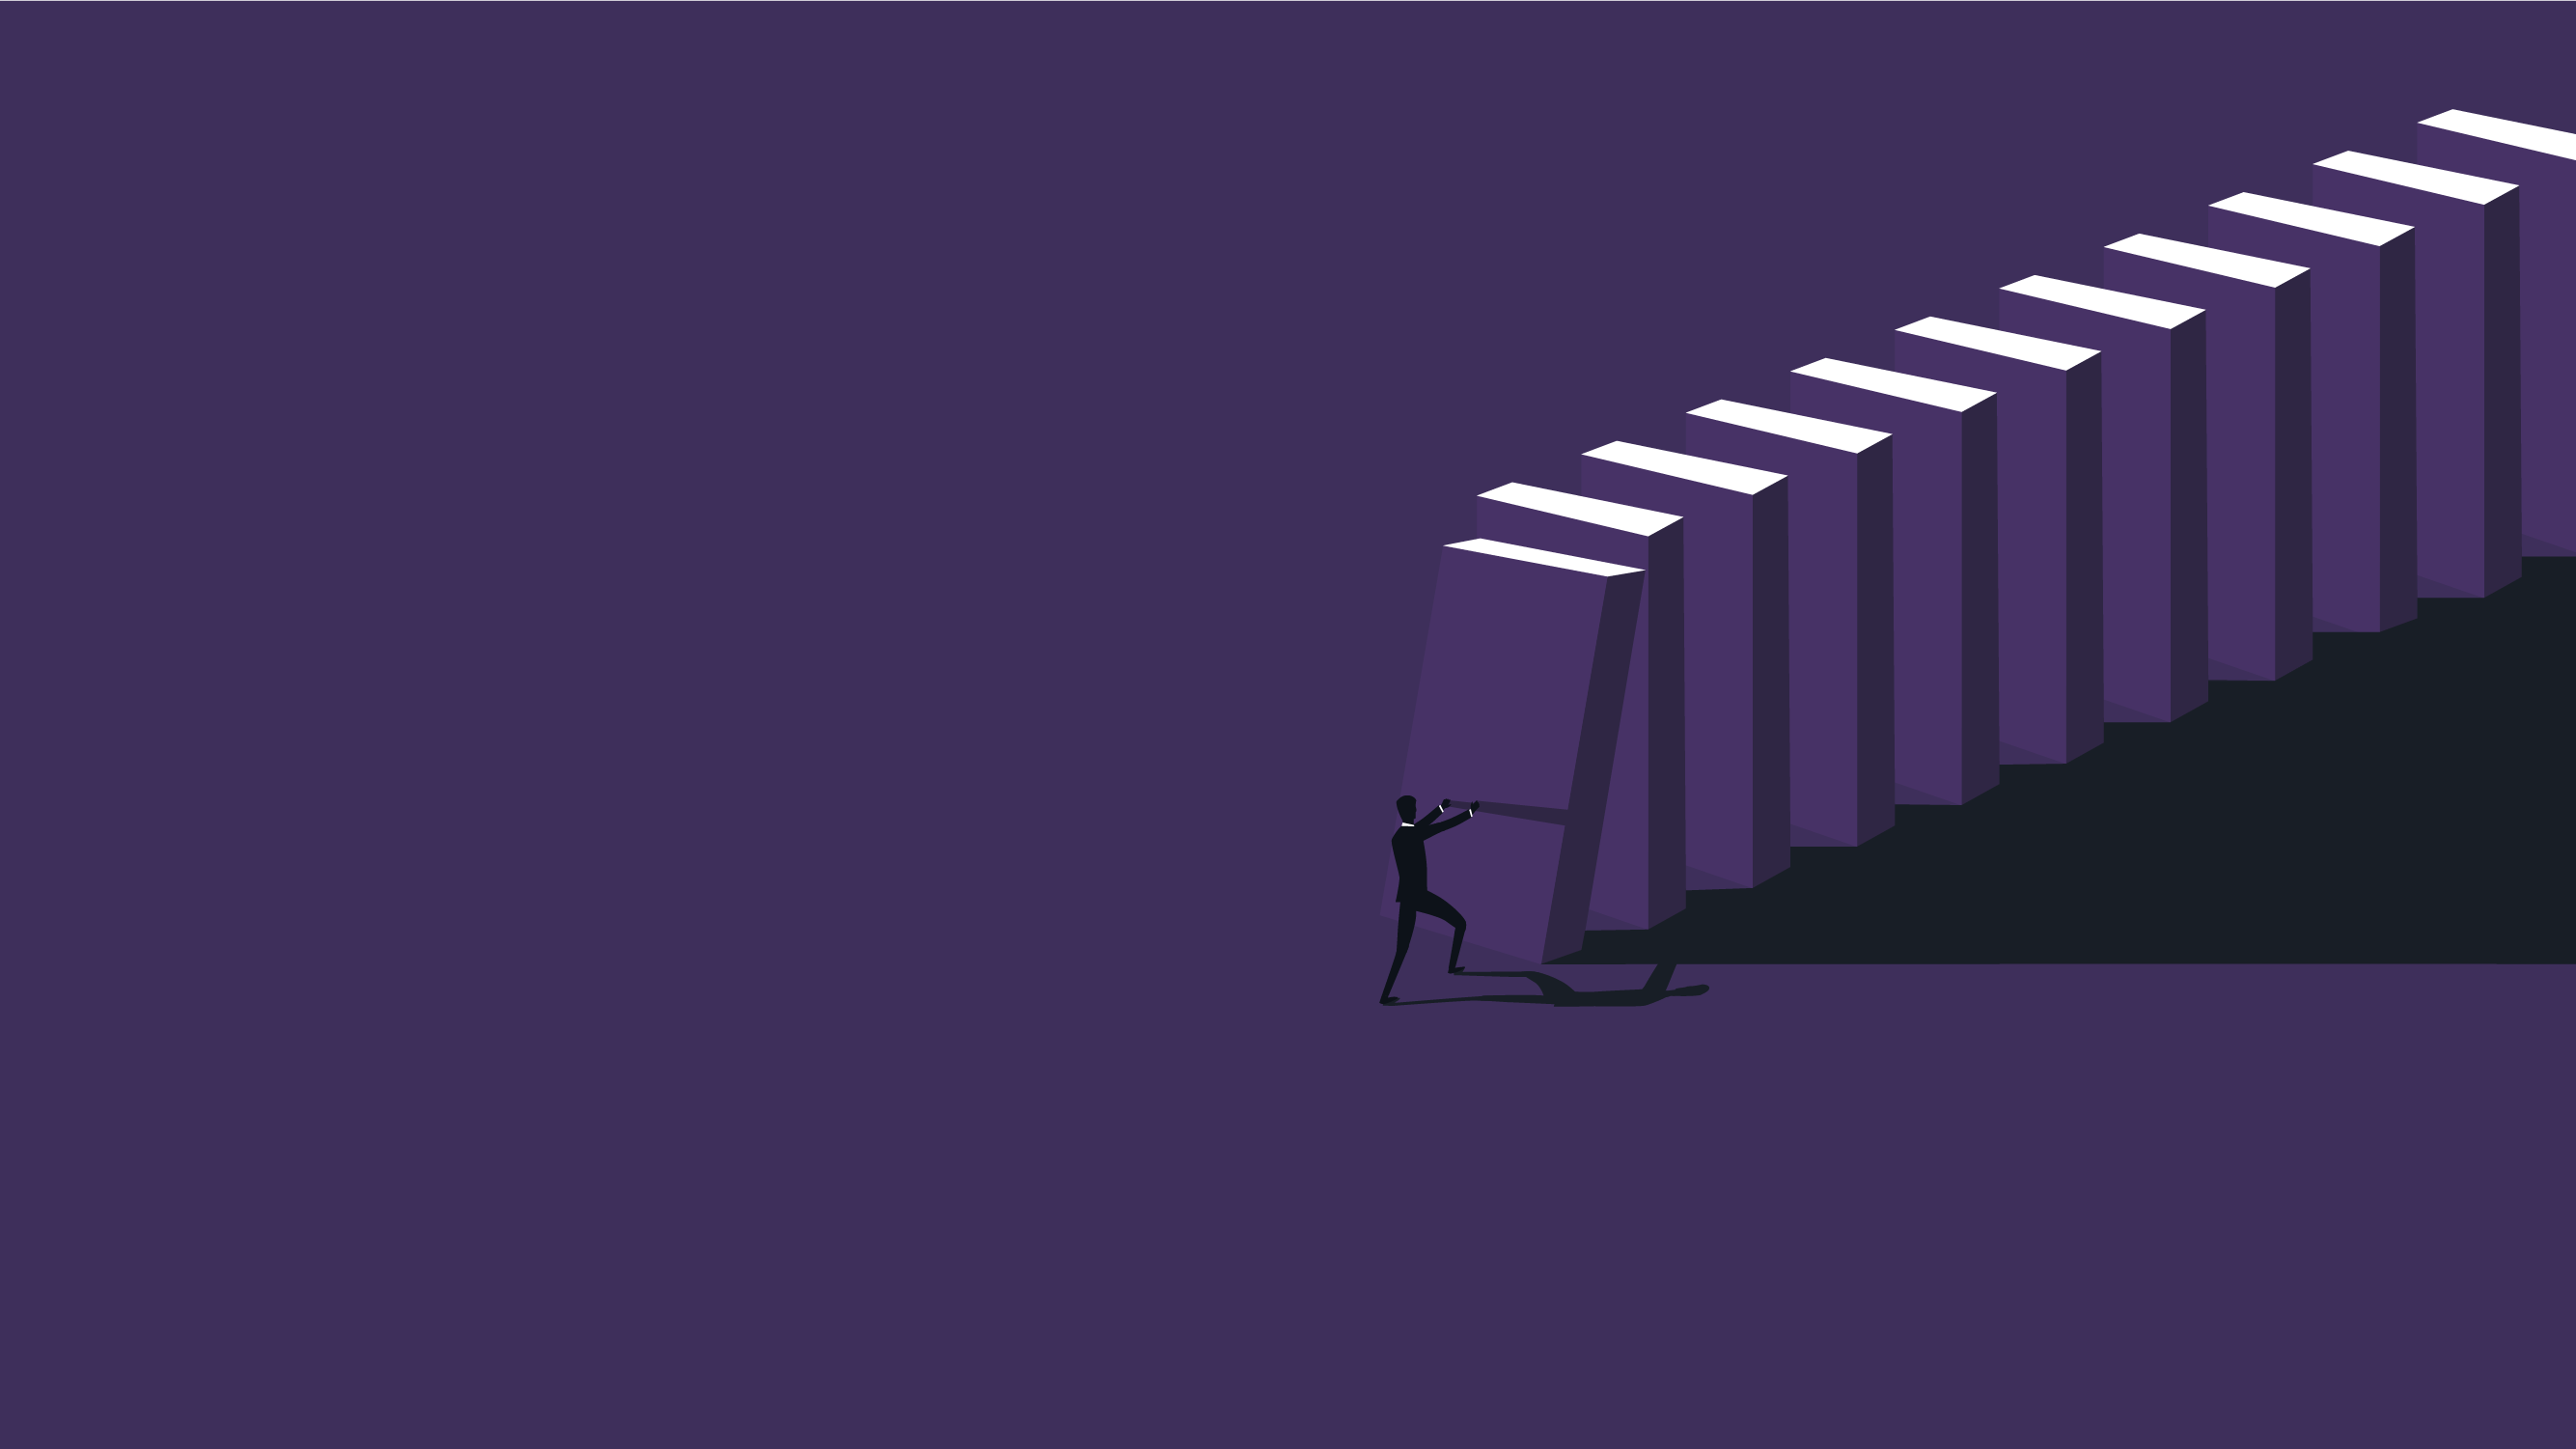 Illustration of a risk manager trying to stop dominoes from falling. The illustration is set against a dark purple background